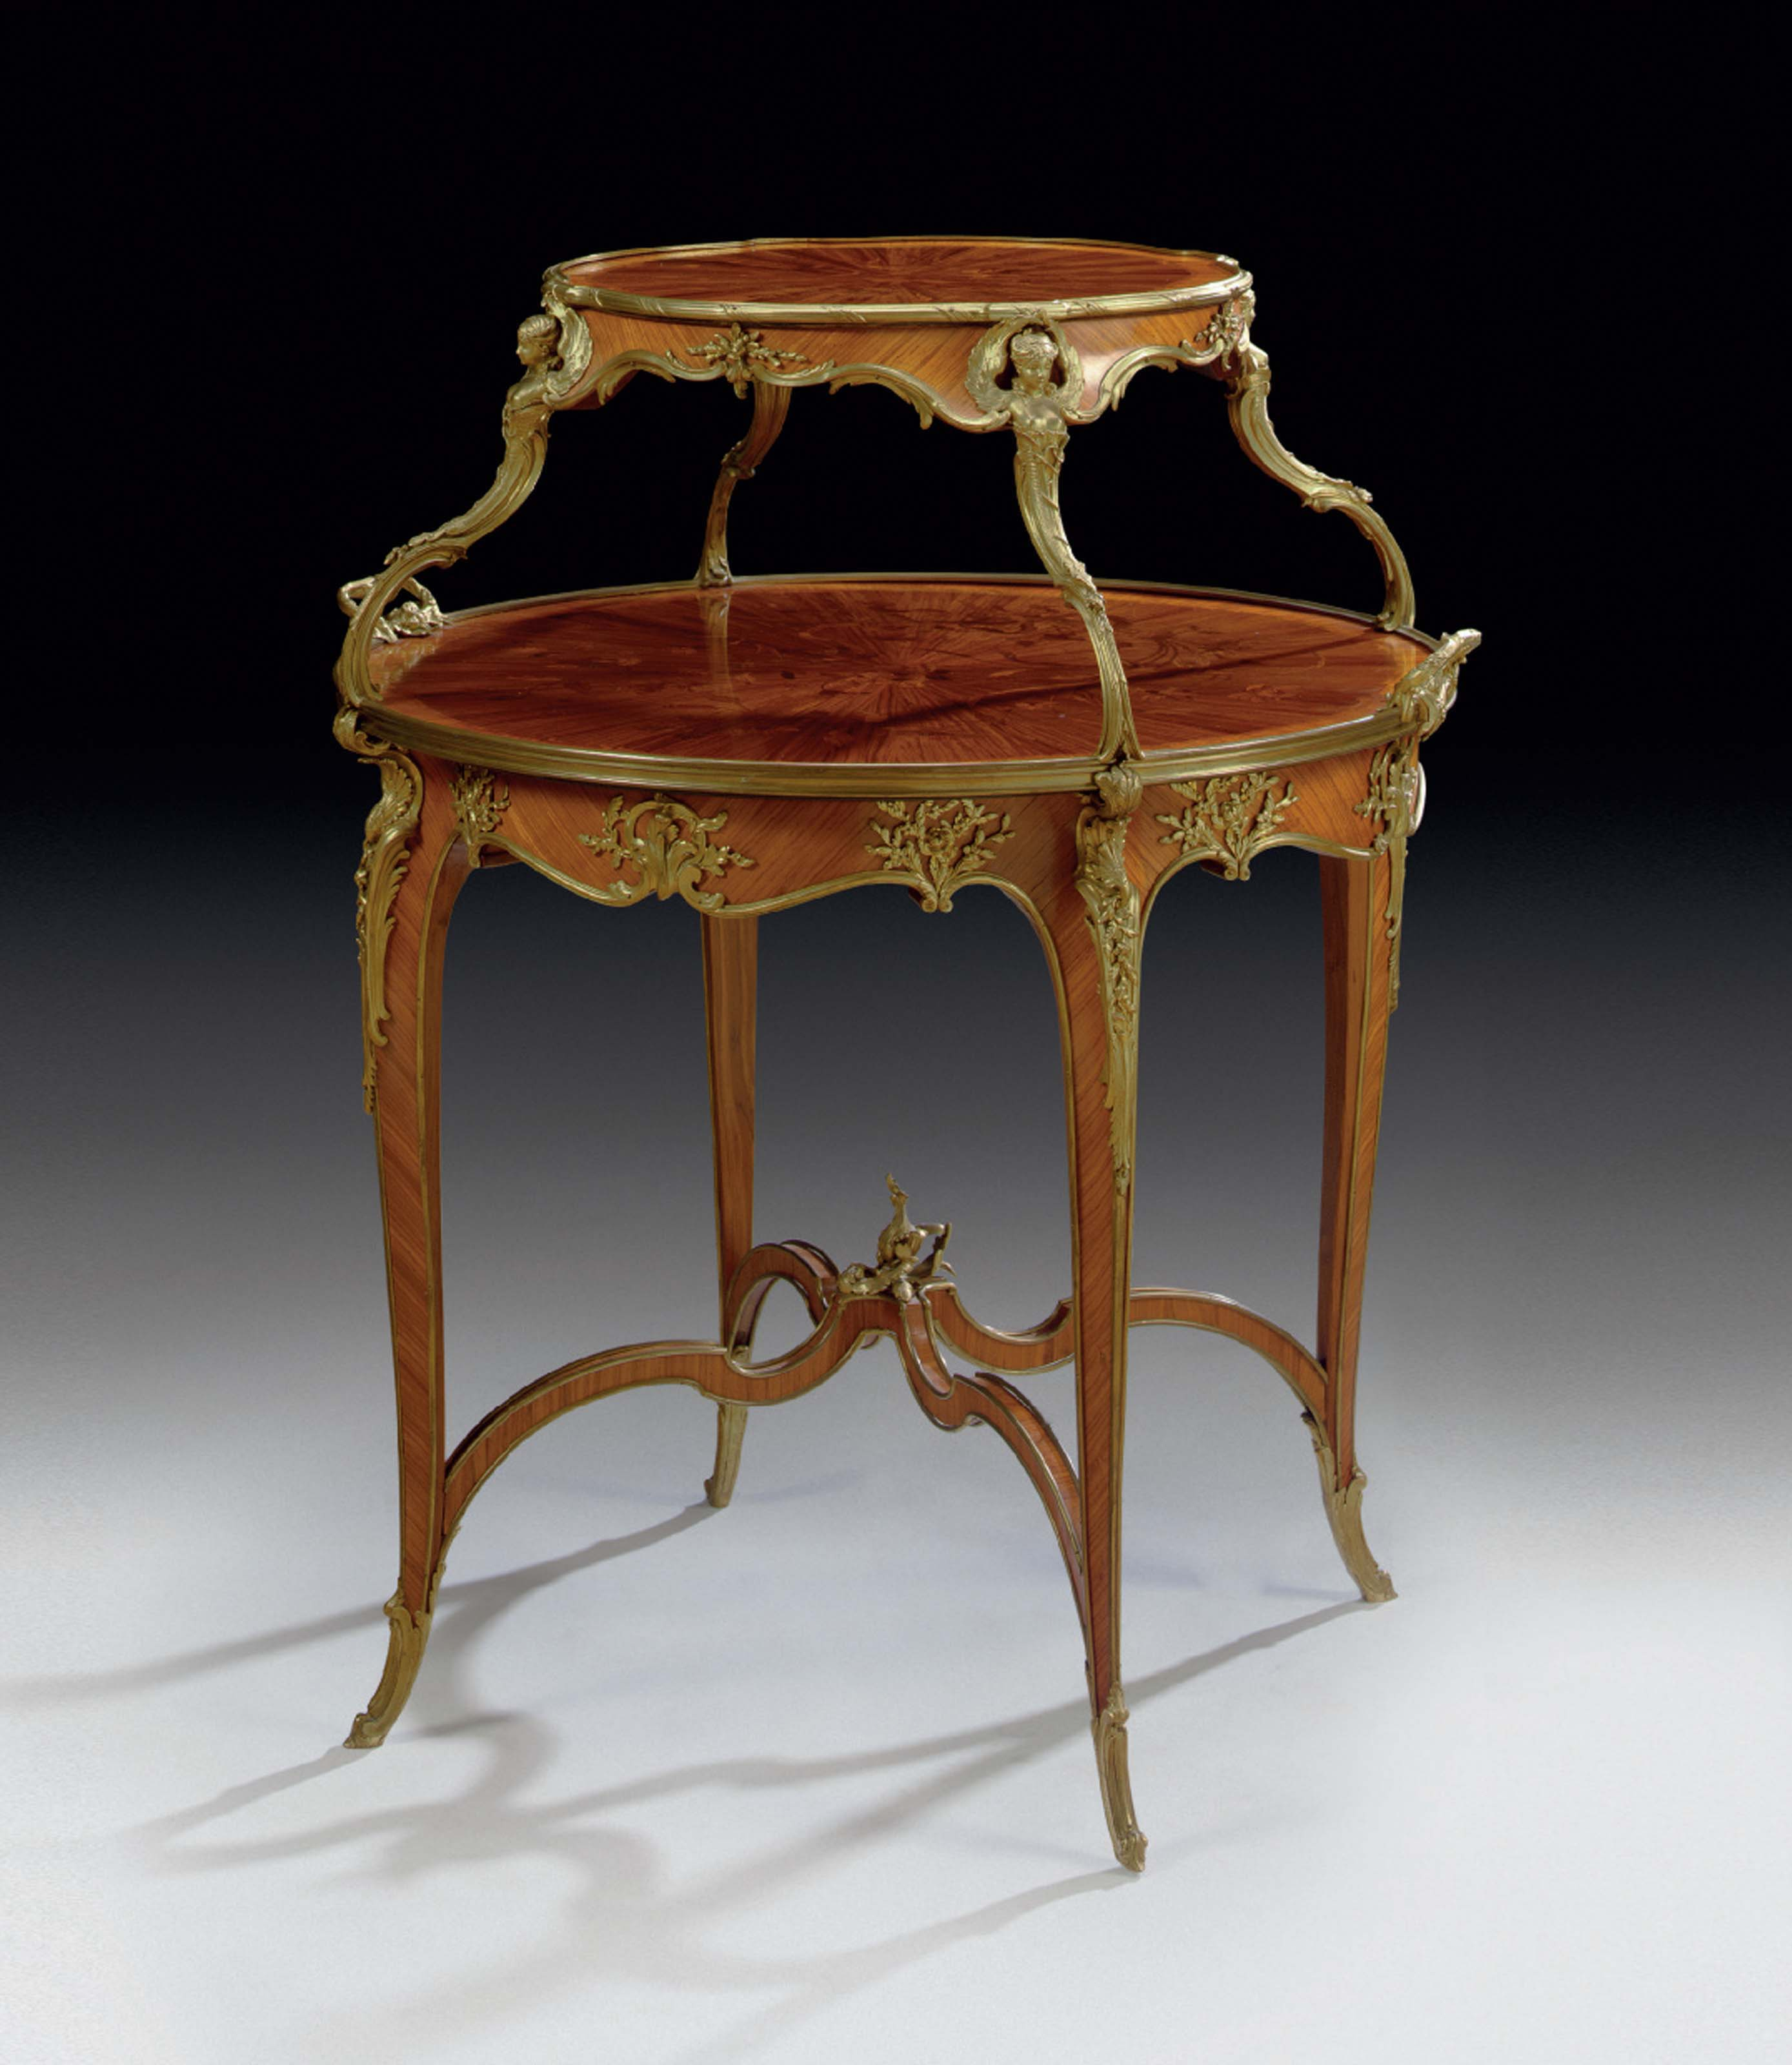 A FRENCH ORMOLU-MOUNTED KINGWOOD, SATINE AND BOIS DE BOUT MARQUETRY TEA-TABLE